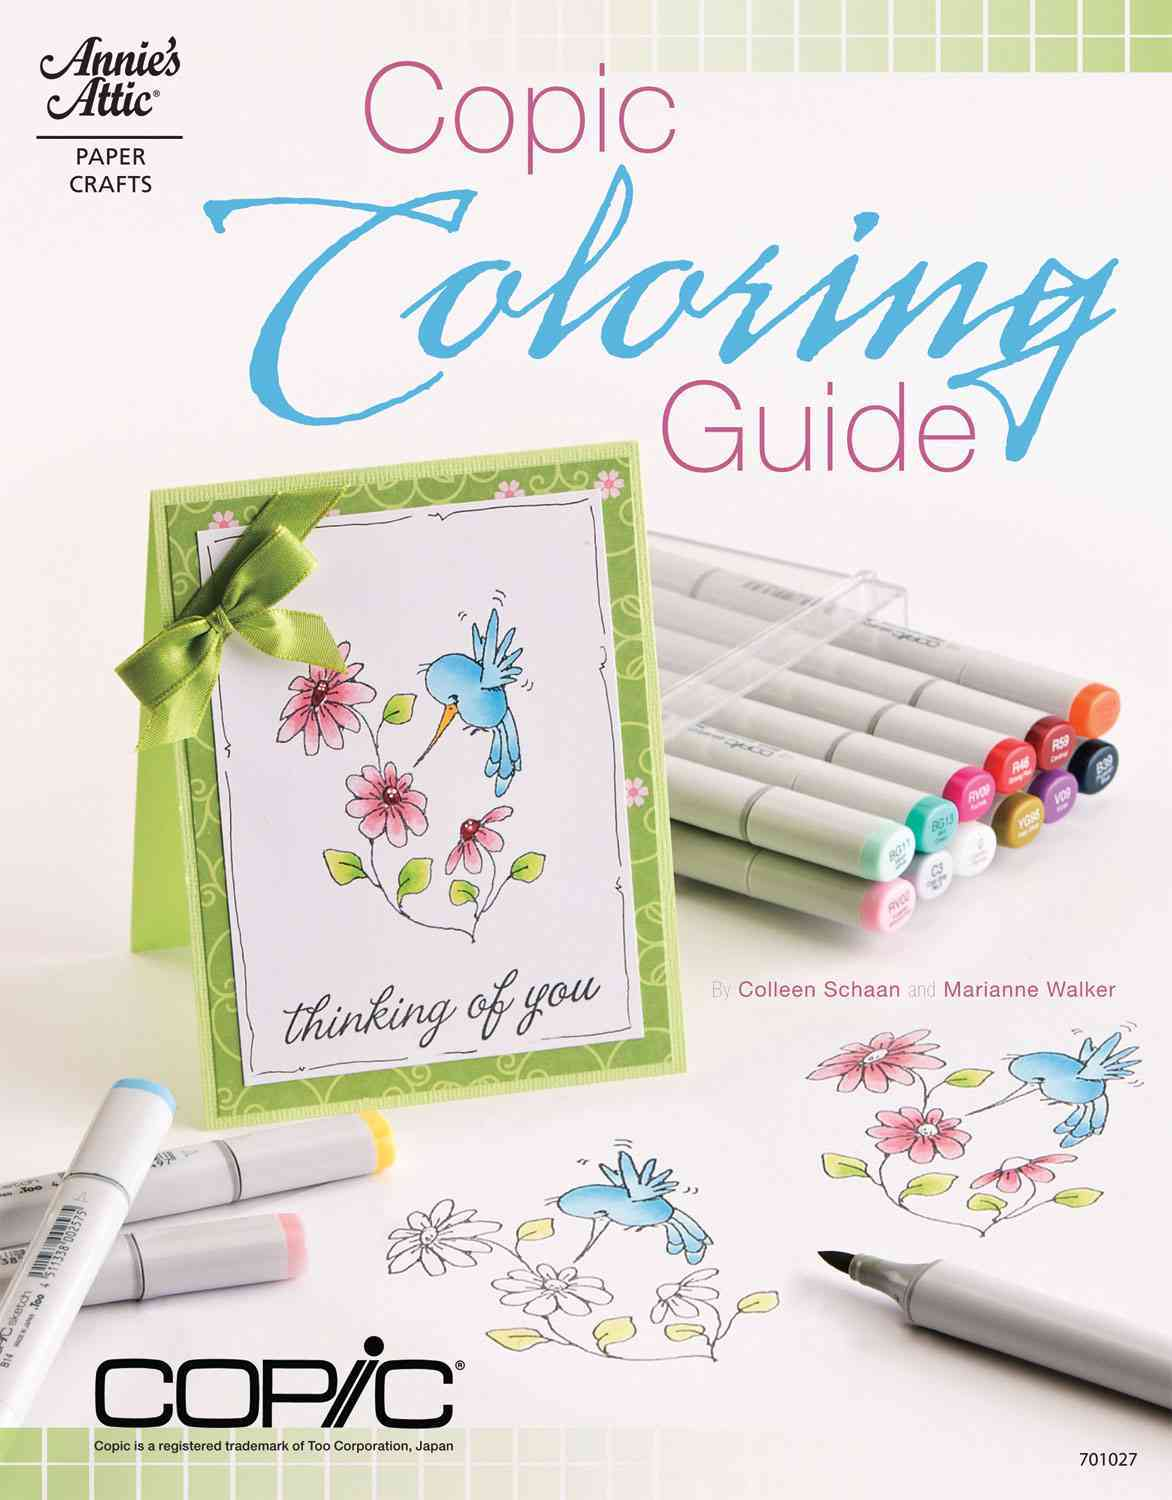 Copic Coloring Guide (Paperback)